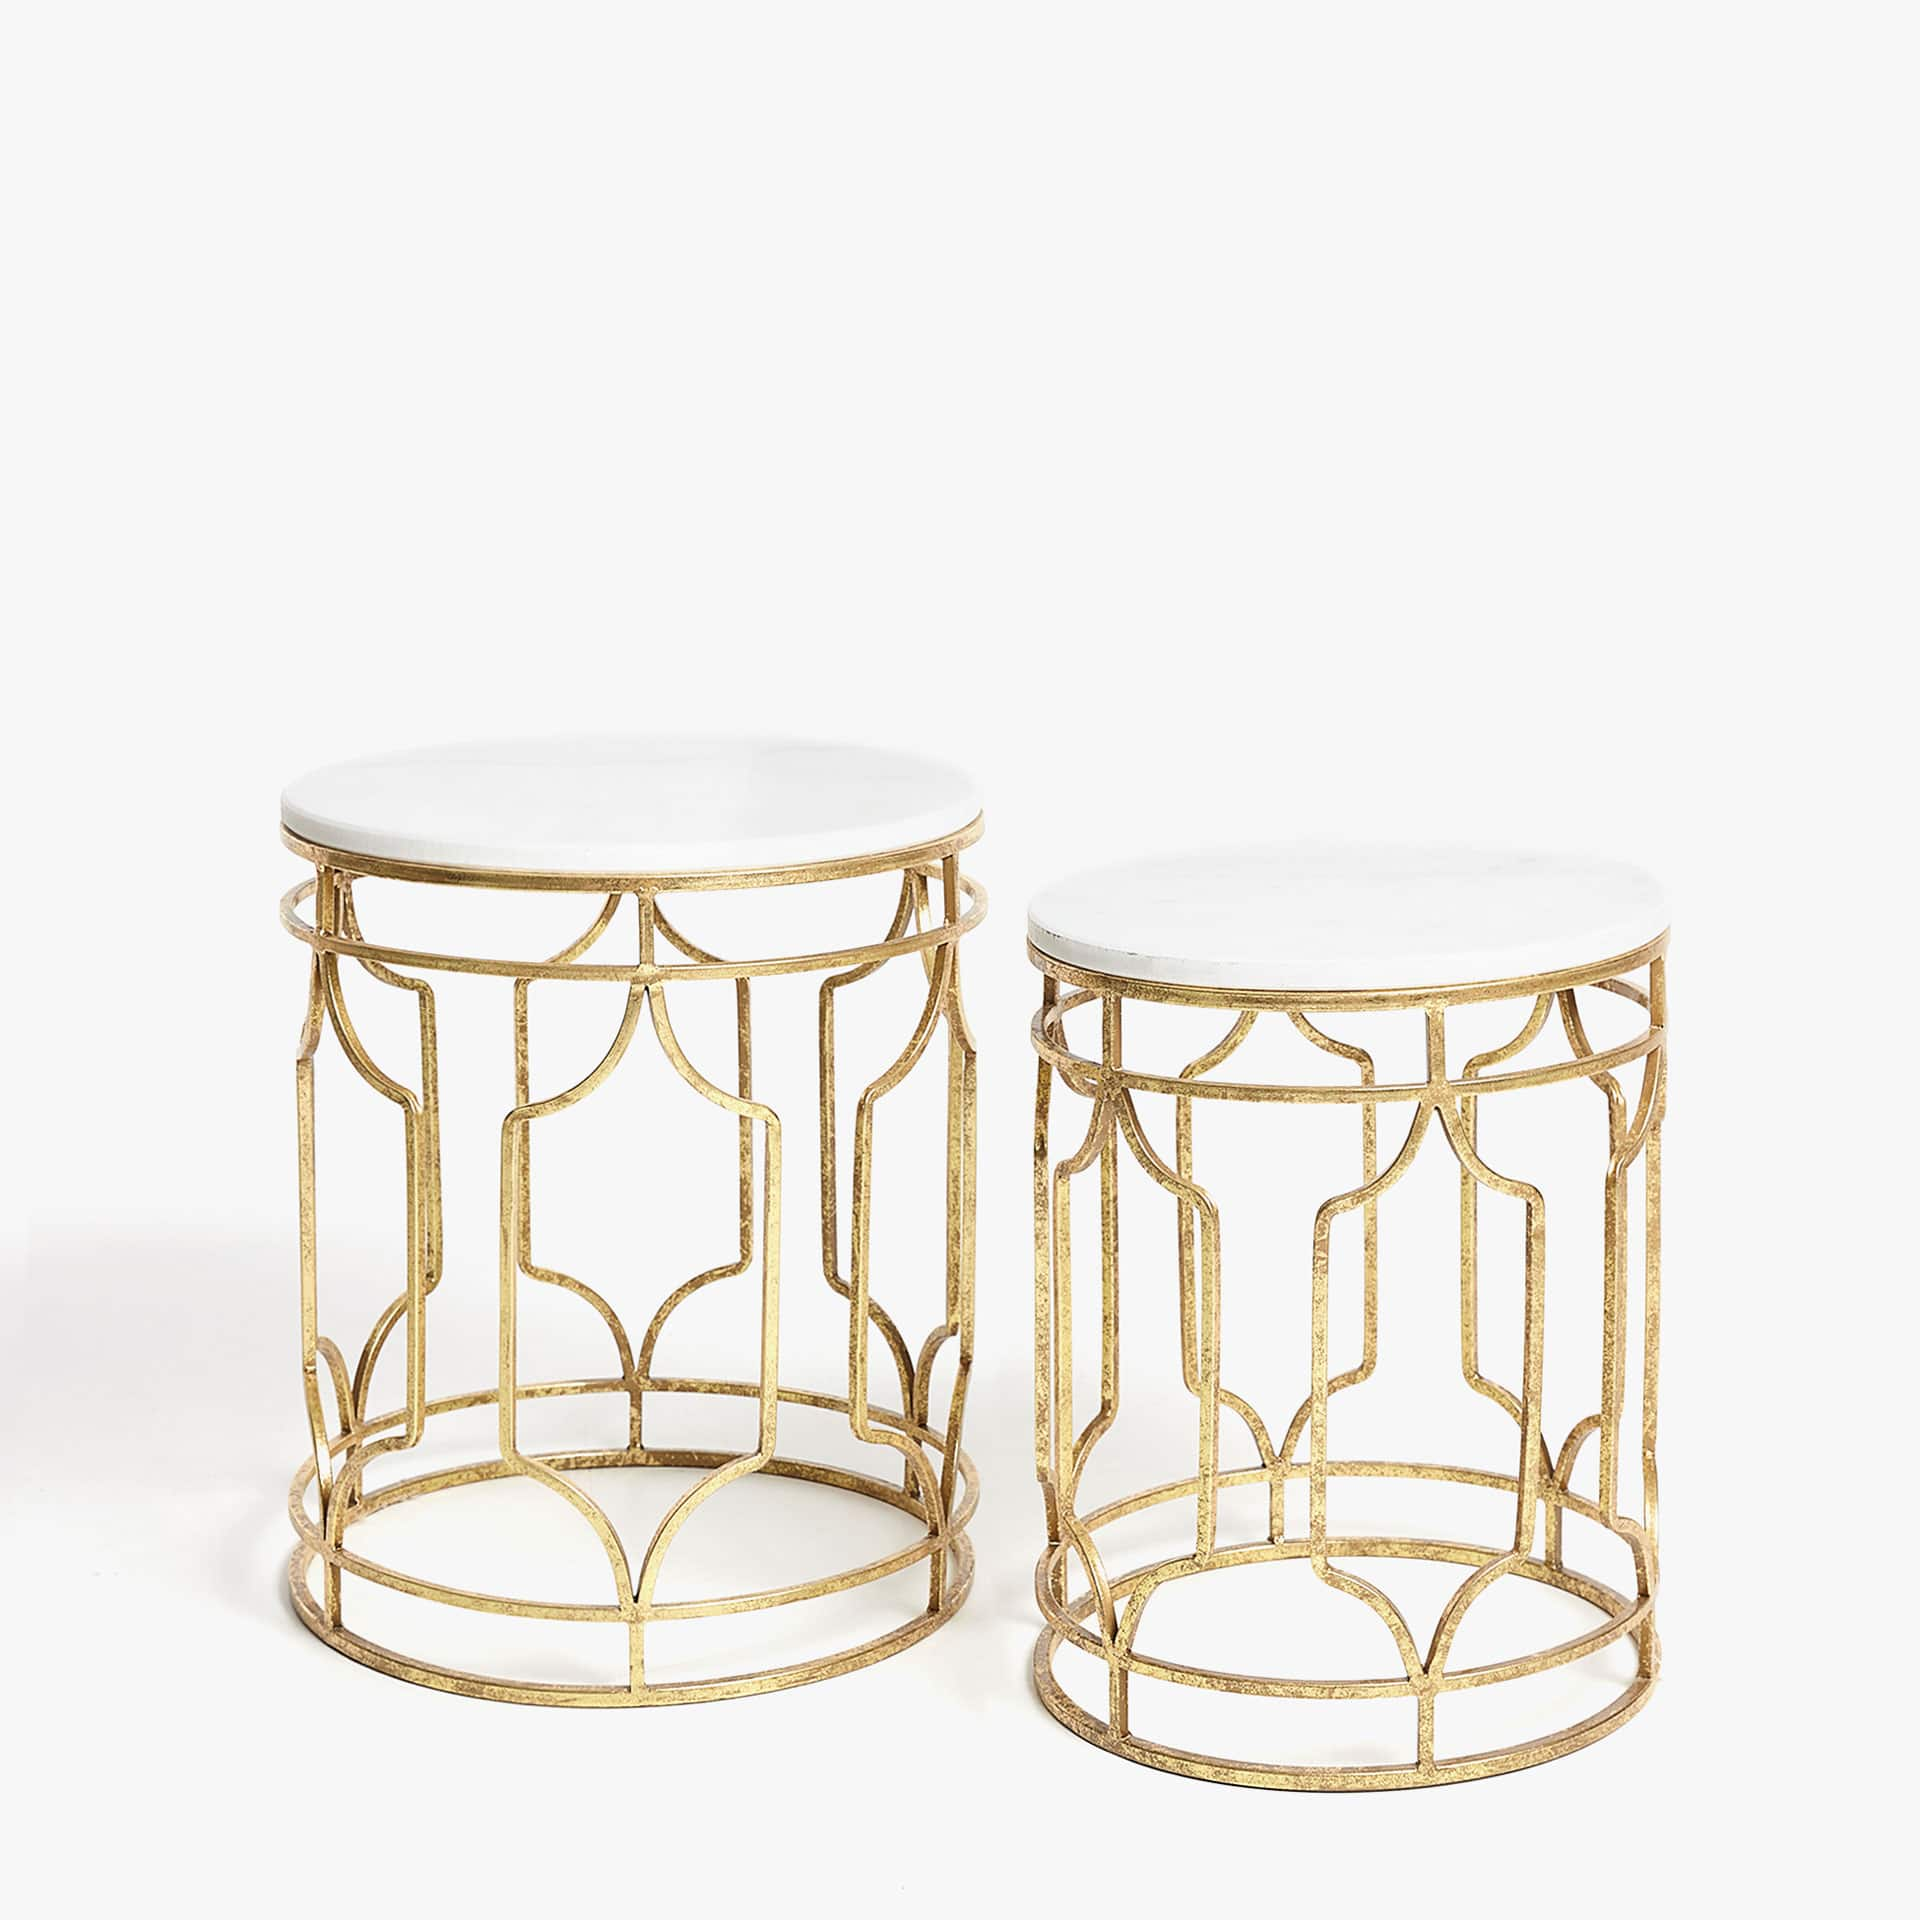 Nested tables with gold metal legs FURNITURE Decoration